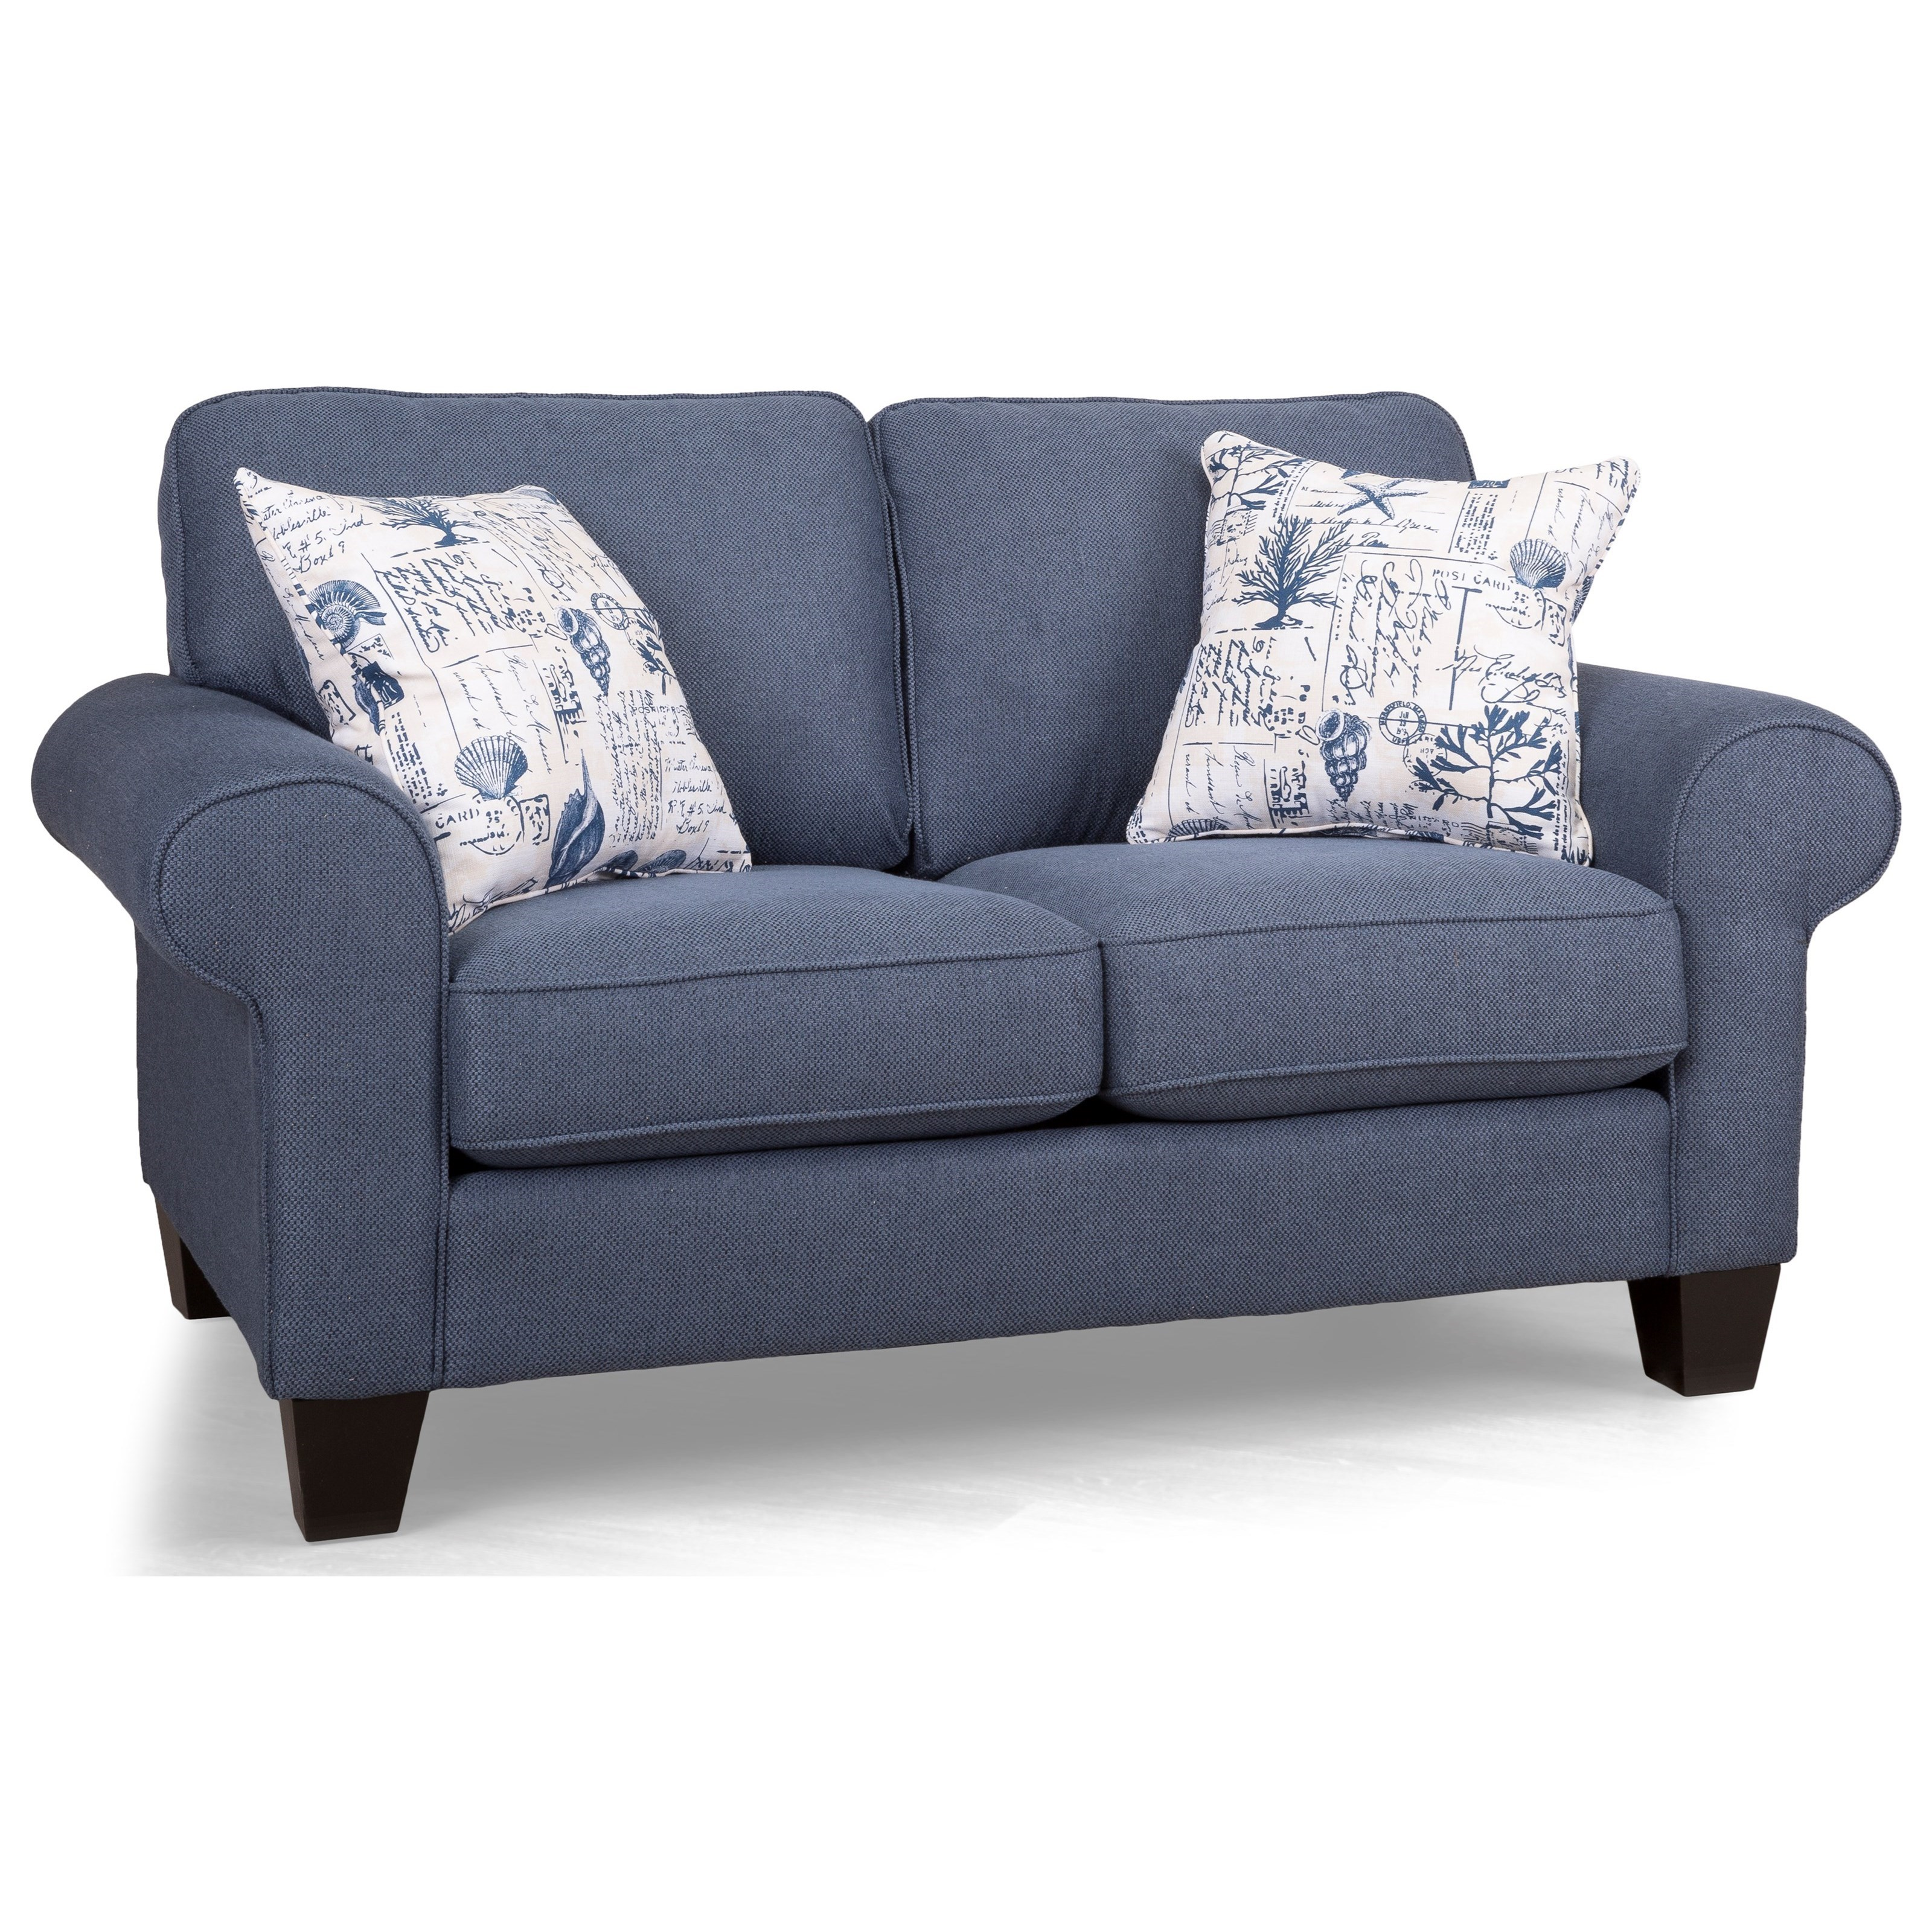 2323 Loveseat by Decor-Rest at Stoney Creek Furniture